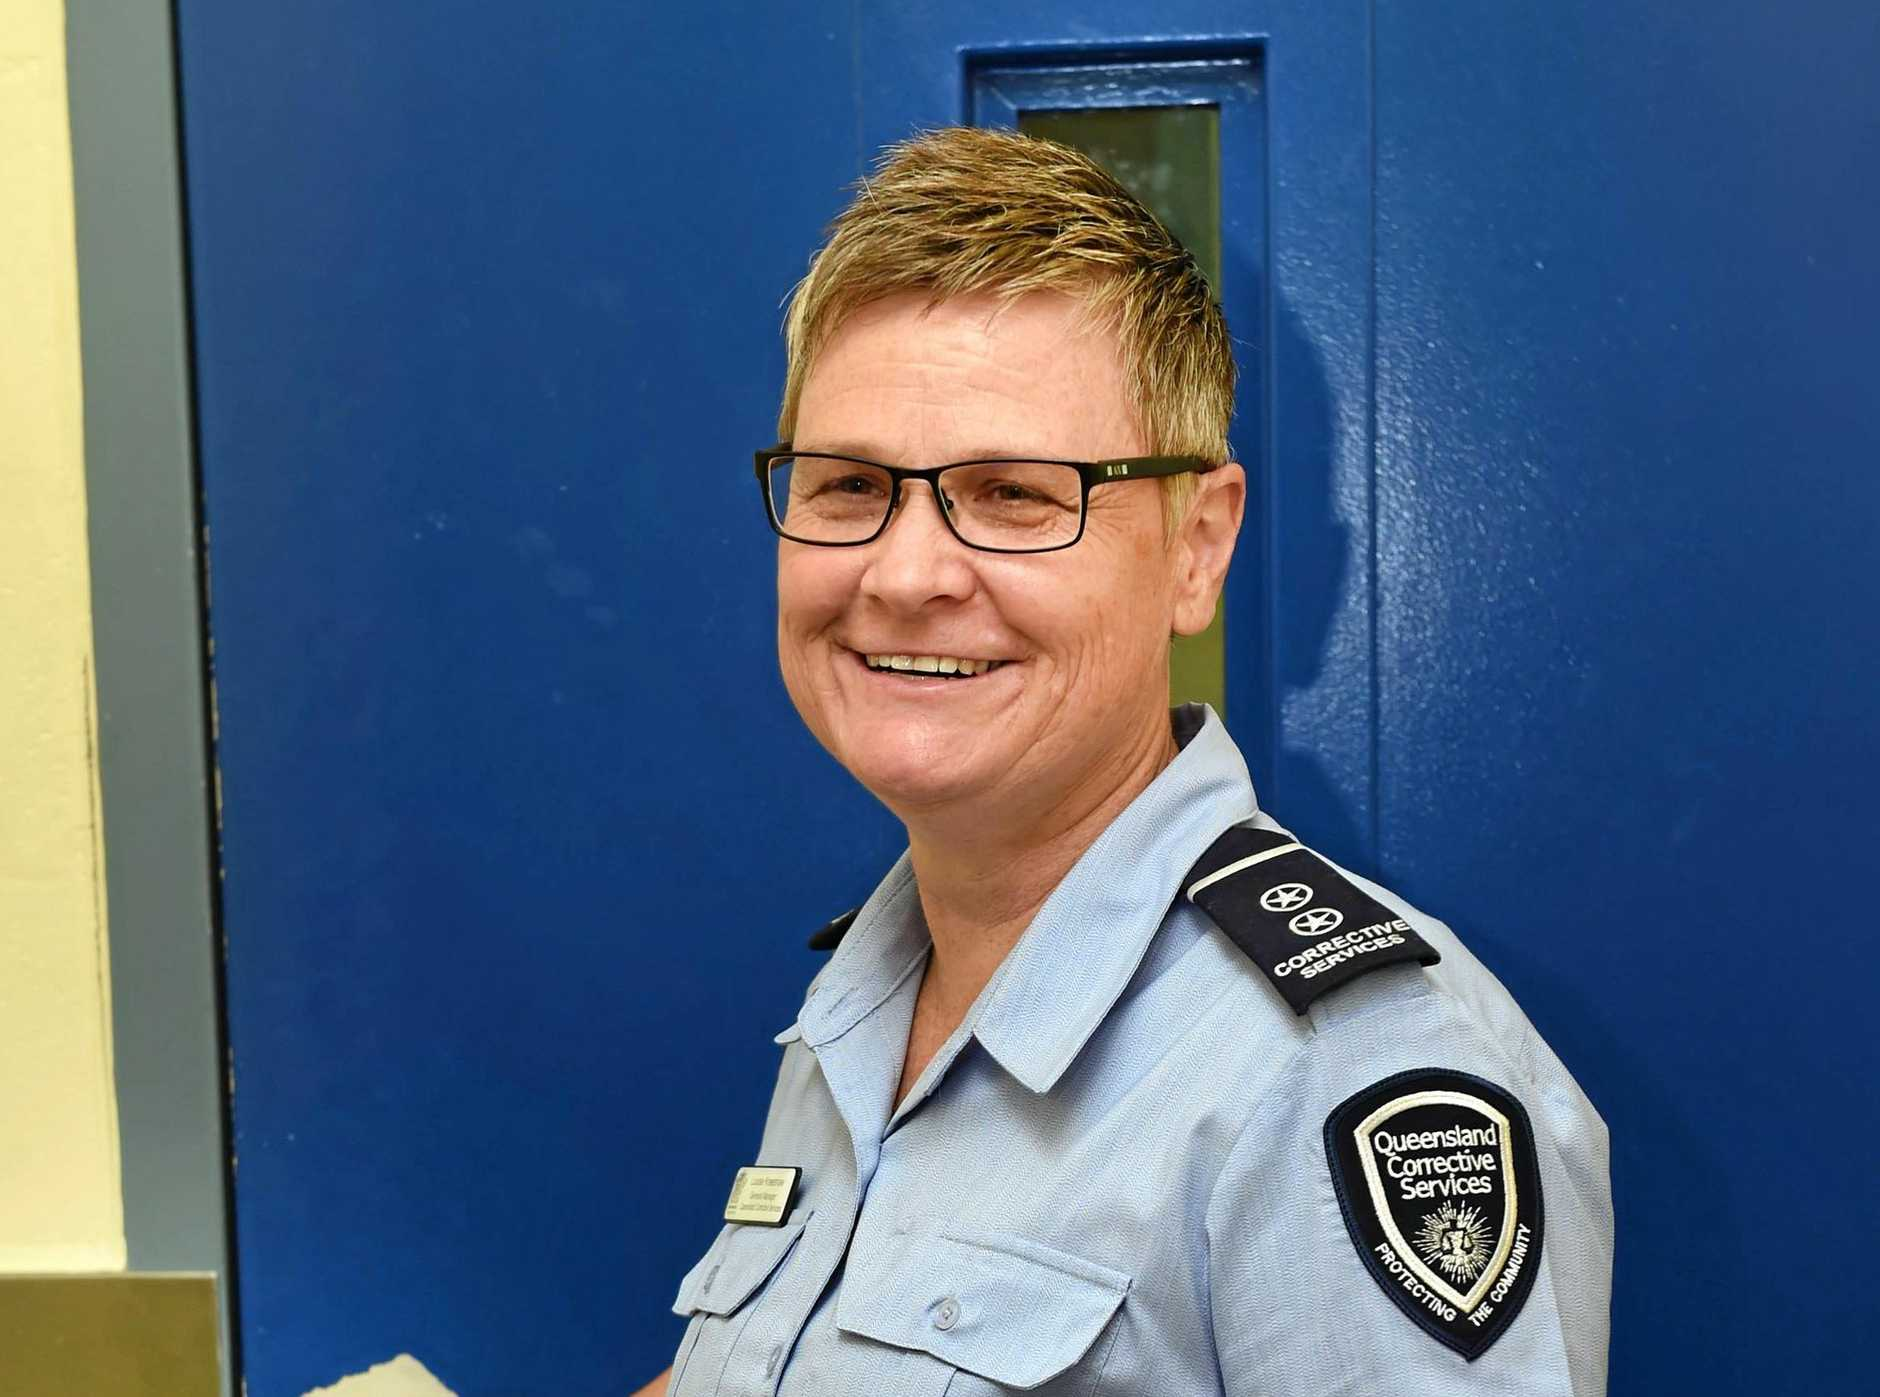 PRISON JOBS: Maryborough Correctional Centre General Manager Louise Kneeshaw says new job oppotunities will help curb overcrowding.